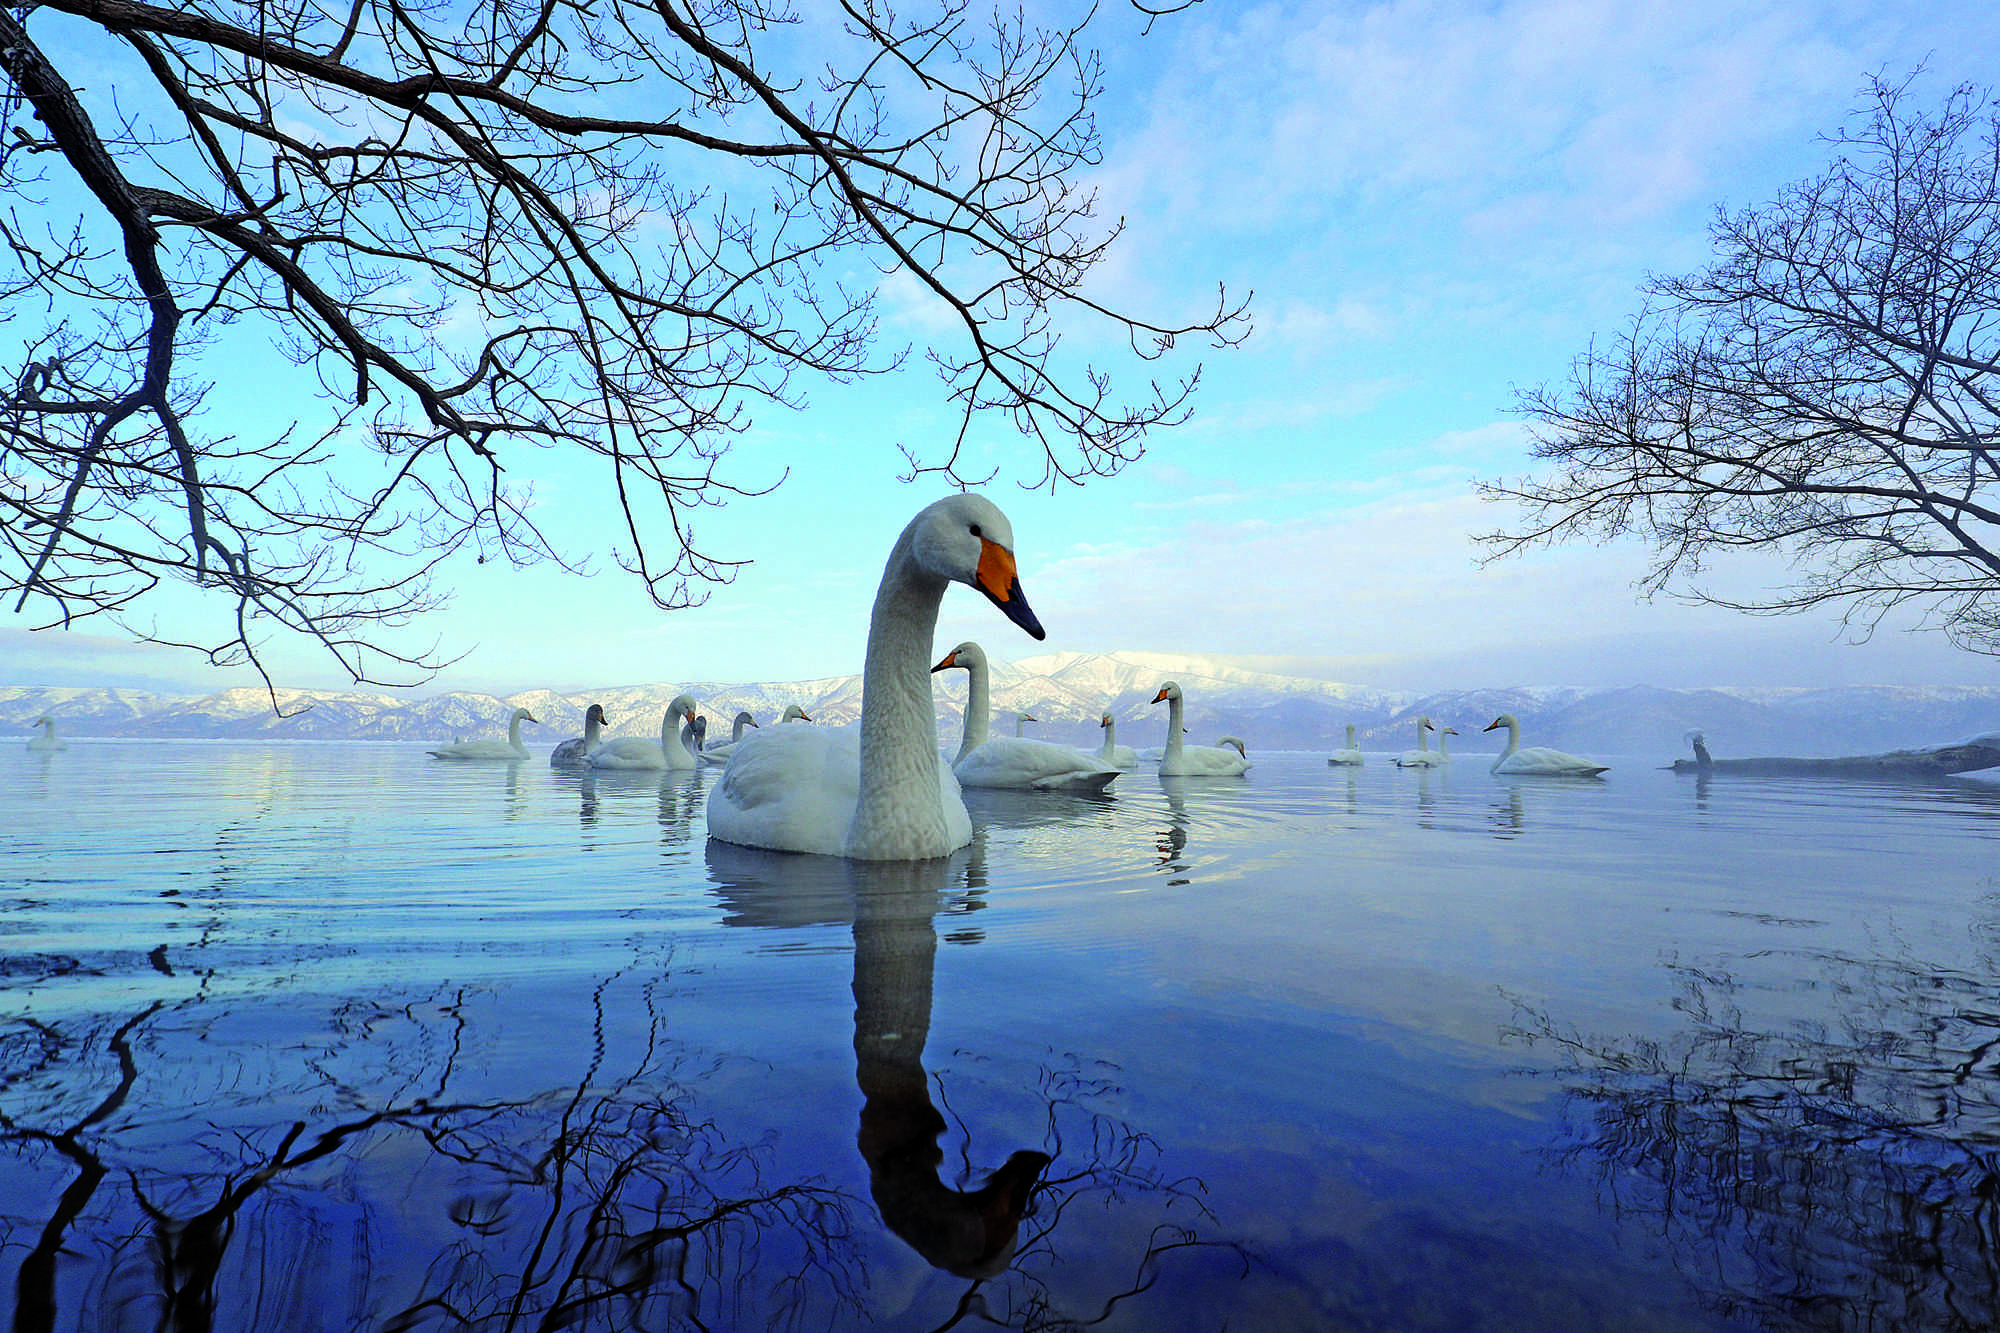 """'Swan Lake' by Lakshitha Karunarathna, shot at Lake Kussharo in Hokkaido, Japan, won the second prize. """"A drift of Whooper Swans floating in arrow head formation against a backdrop of snow-frosted mountains, framed by a latticework of tree branches reflected in the water,"""" said the press note. """"The low, wide angle frame has the swans dwarfing the mountains, infusing the scene with a sense of the surreal.""""  Considered one of the world's heaviest flying birds, the species can fly thousands of miles in the winter to warmer climates. They are found in large parts of Europe and East Asia and occasionally, in North America and the Indian subcontinent."""